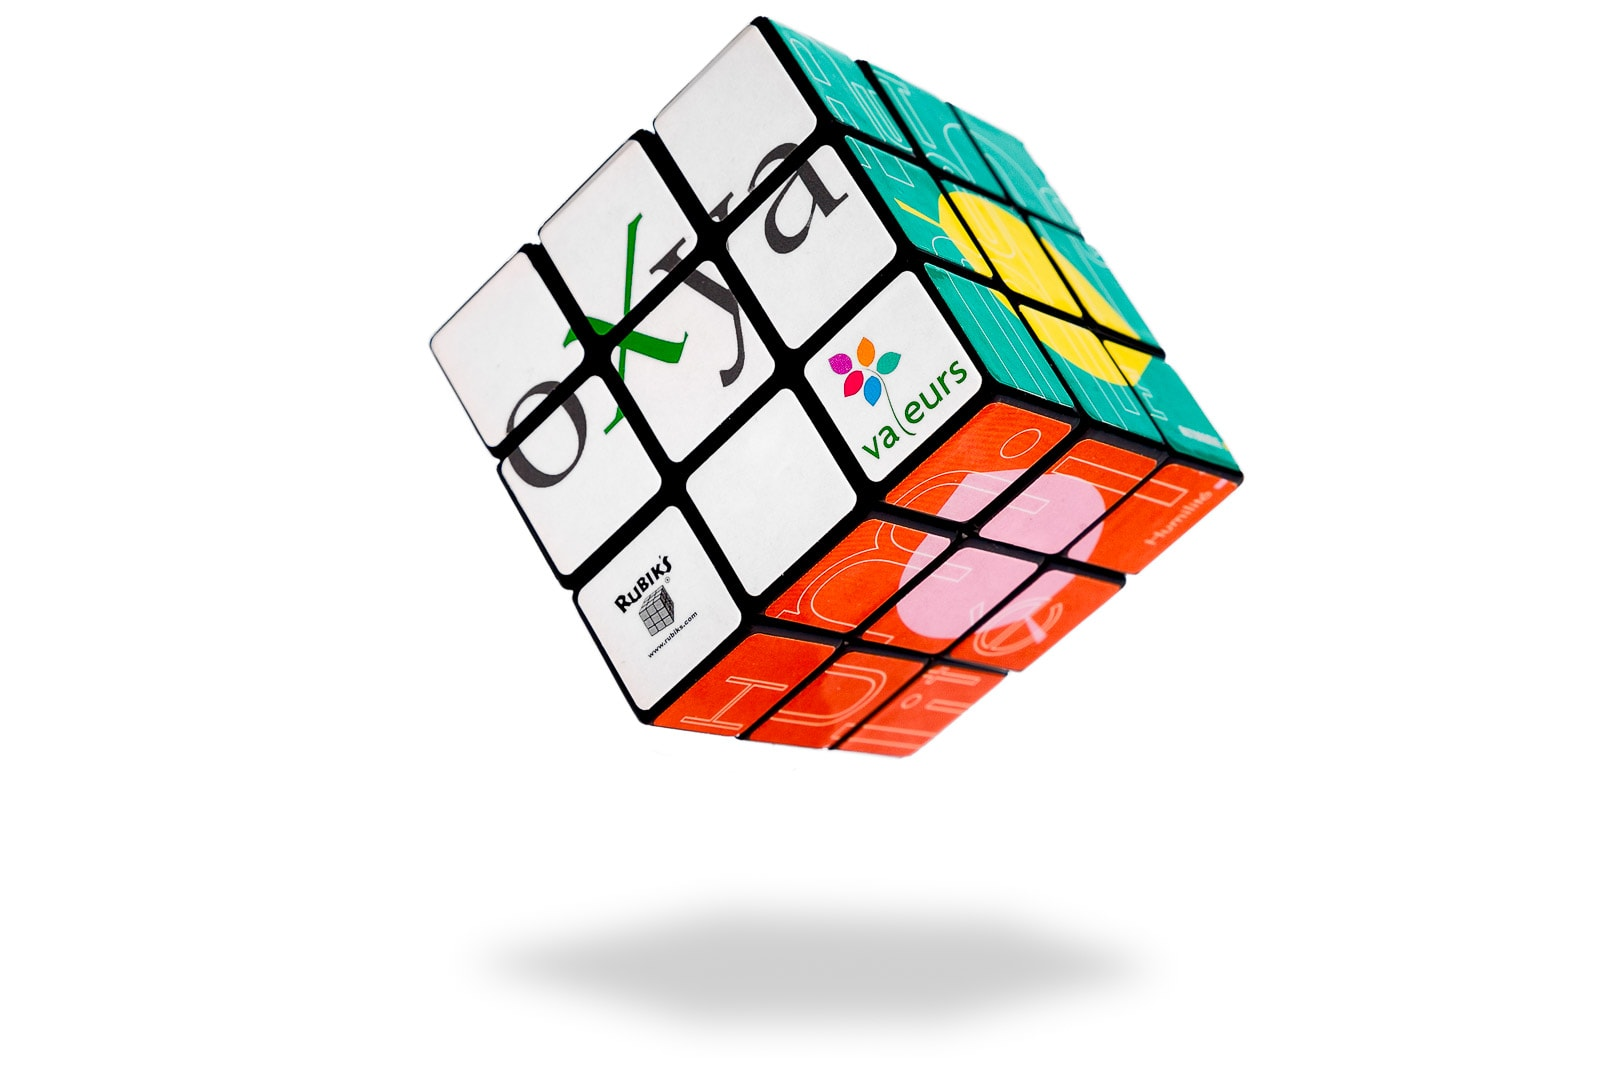 floating oxya rubiks cube business merchandise on white background